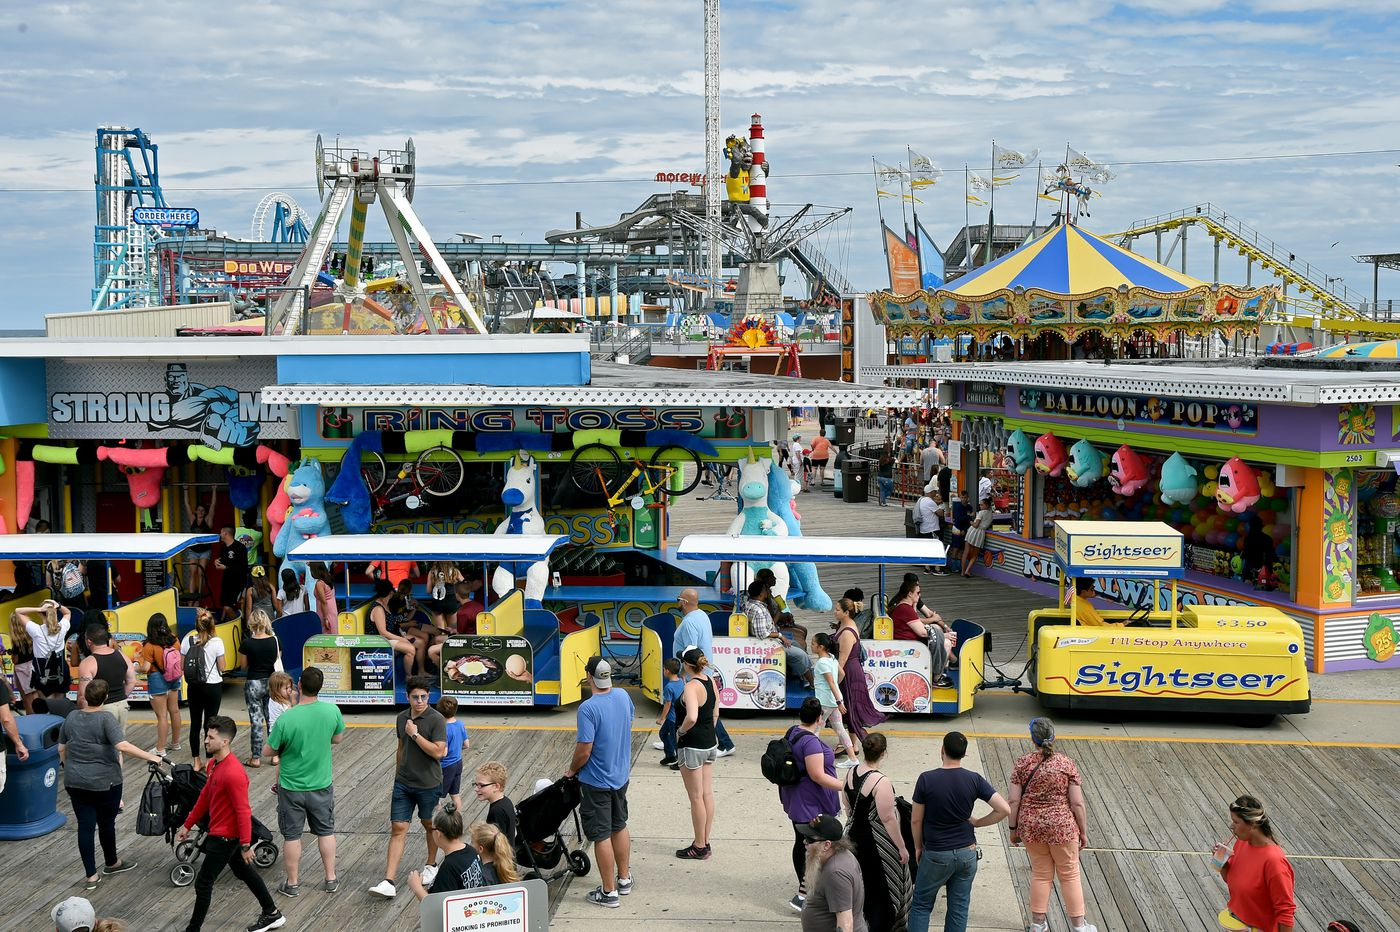 With two boardwalk icons celebrating anniversaries in the Wildwoods, a new ride honors the past